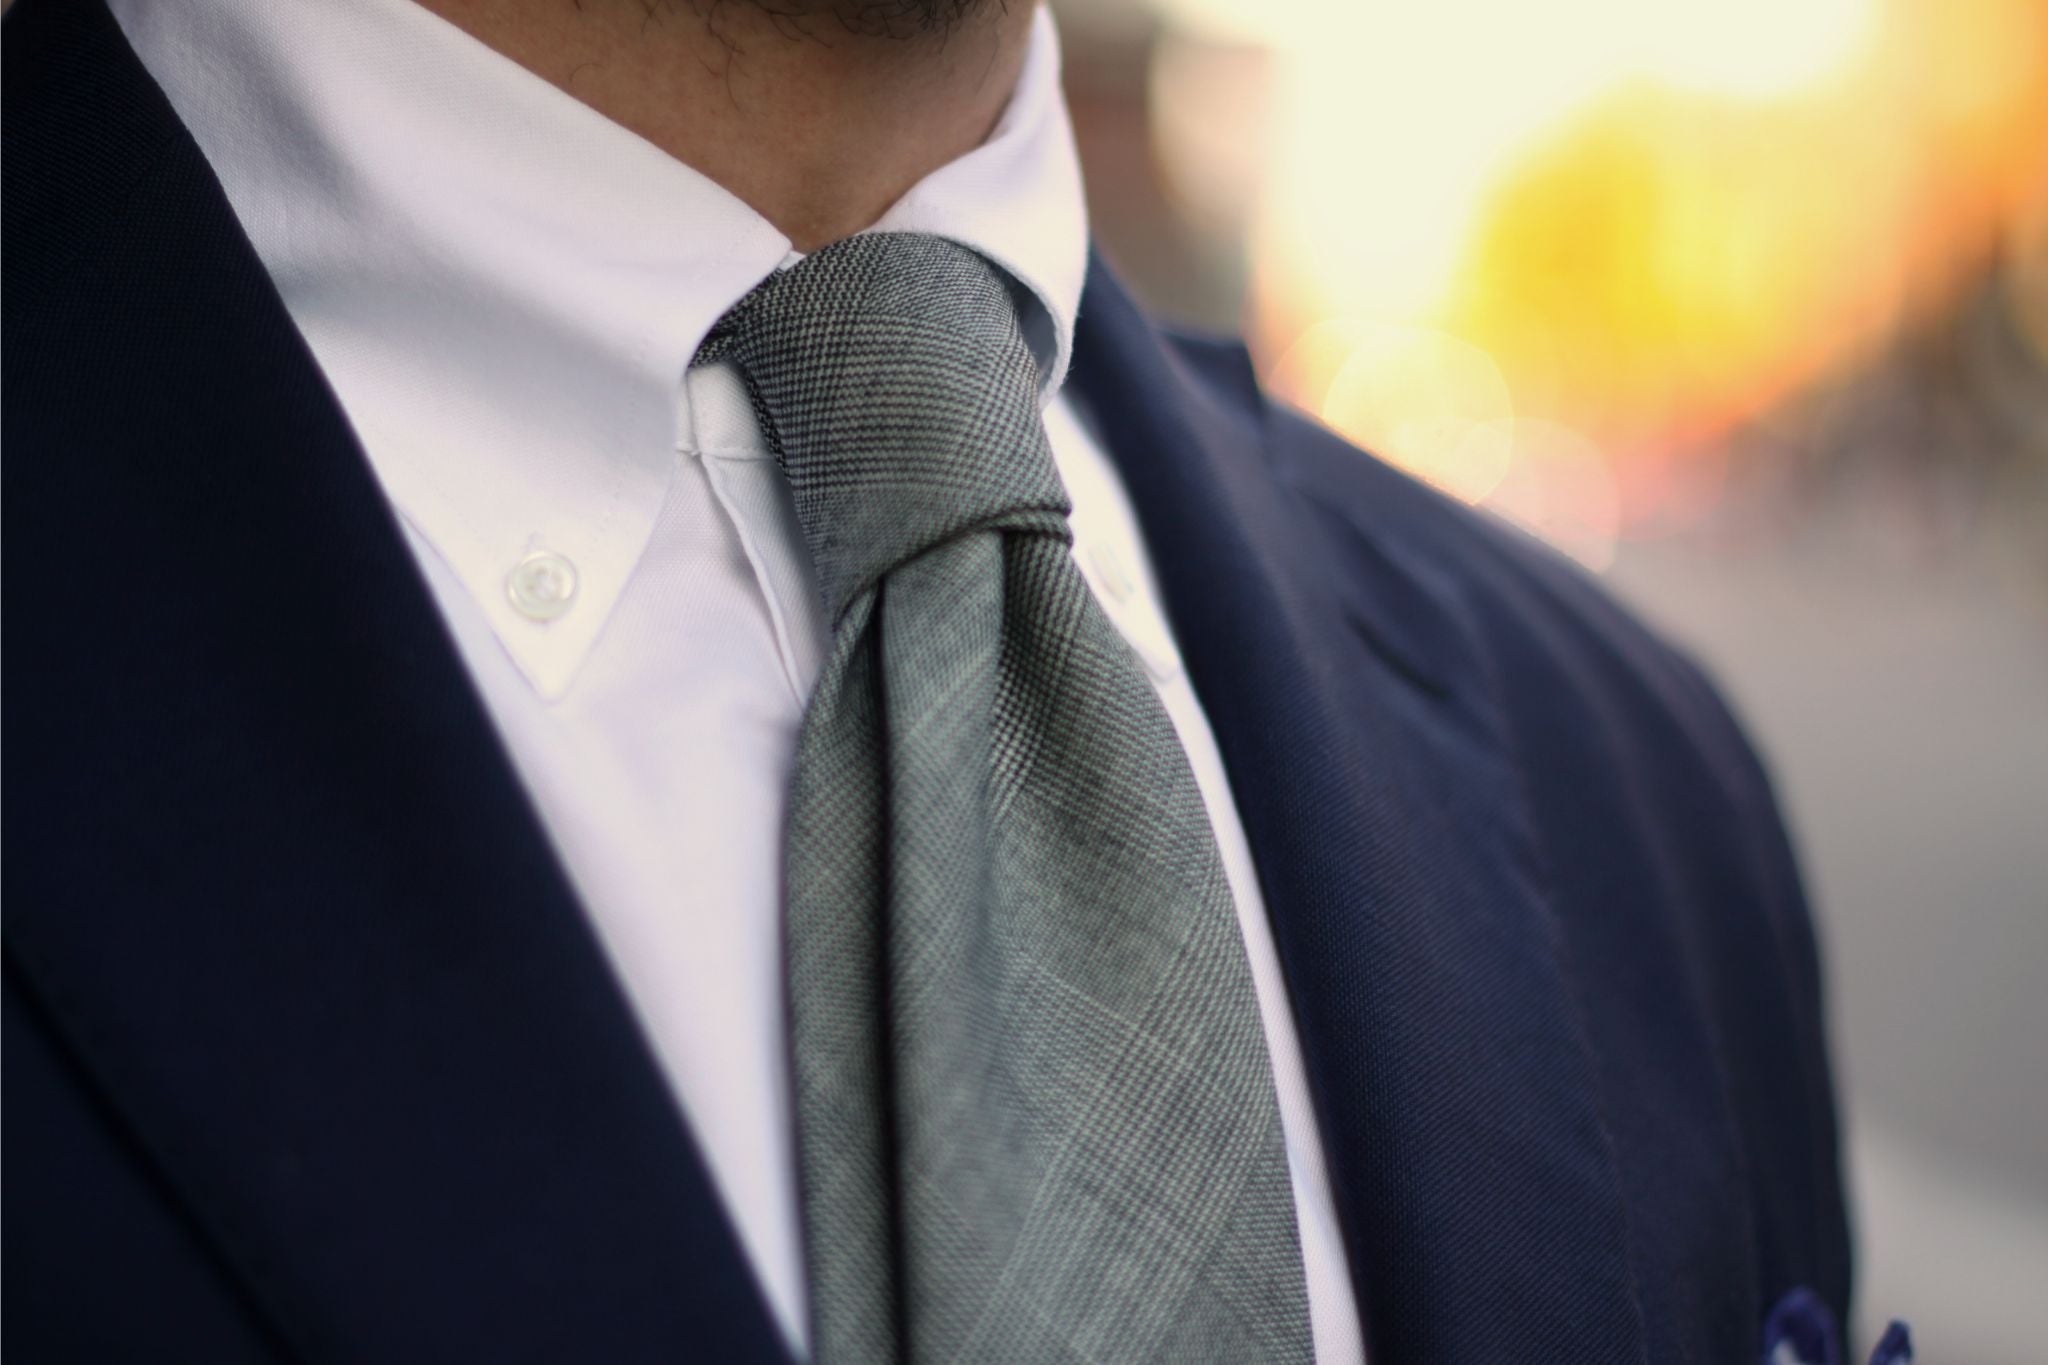 How to dress down a suit - Berg&Berg soft collar button-down collar shirt